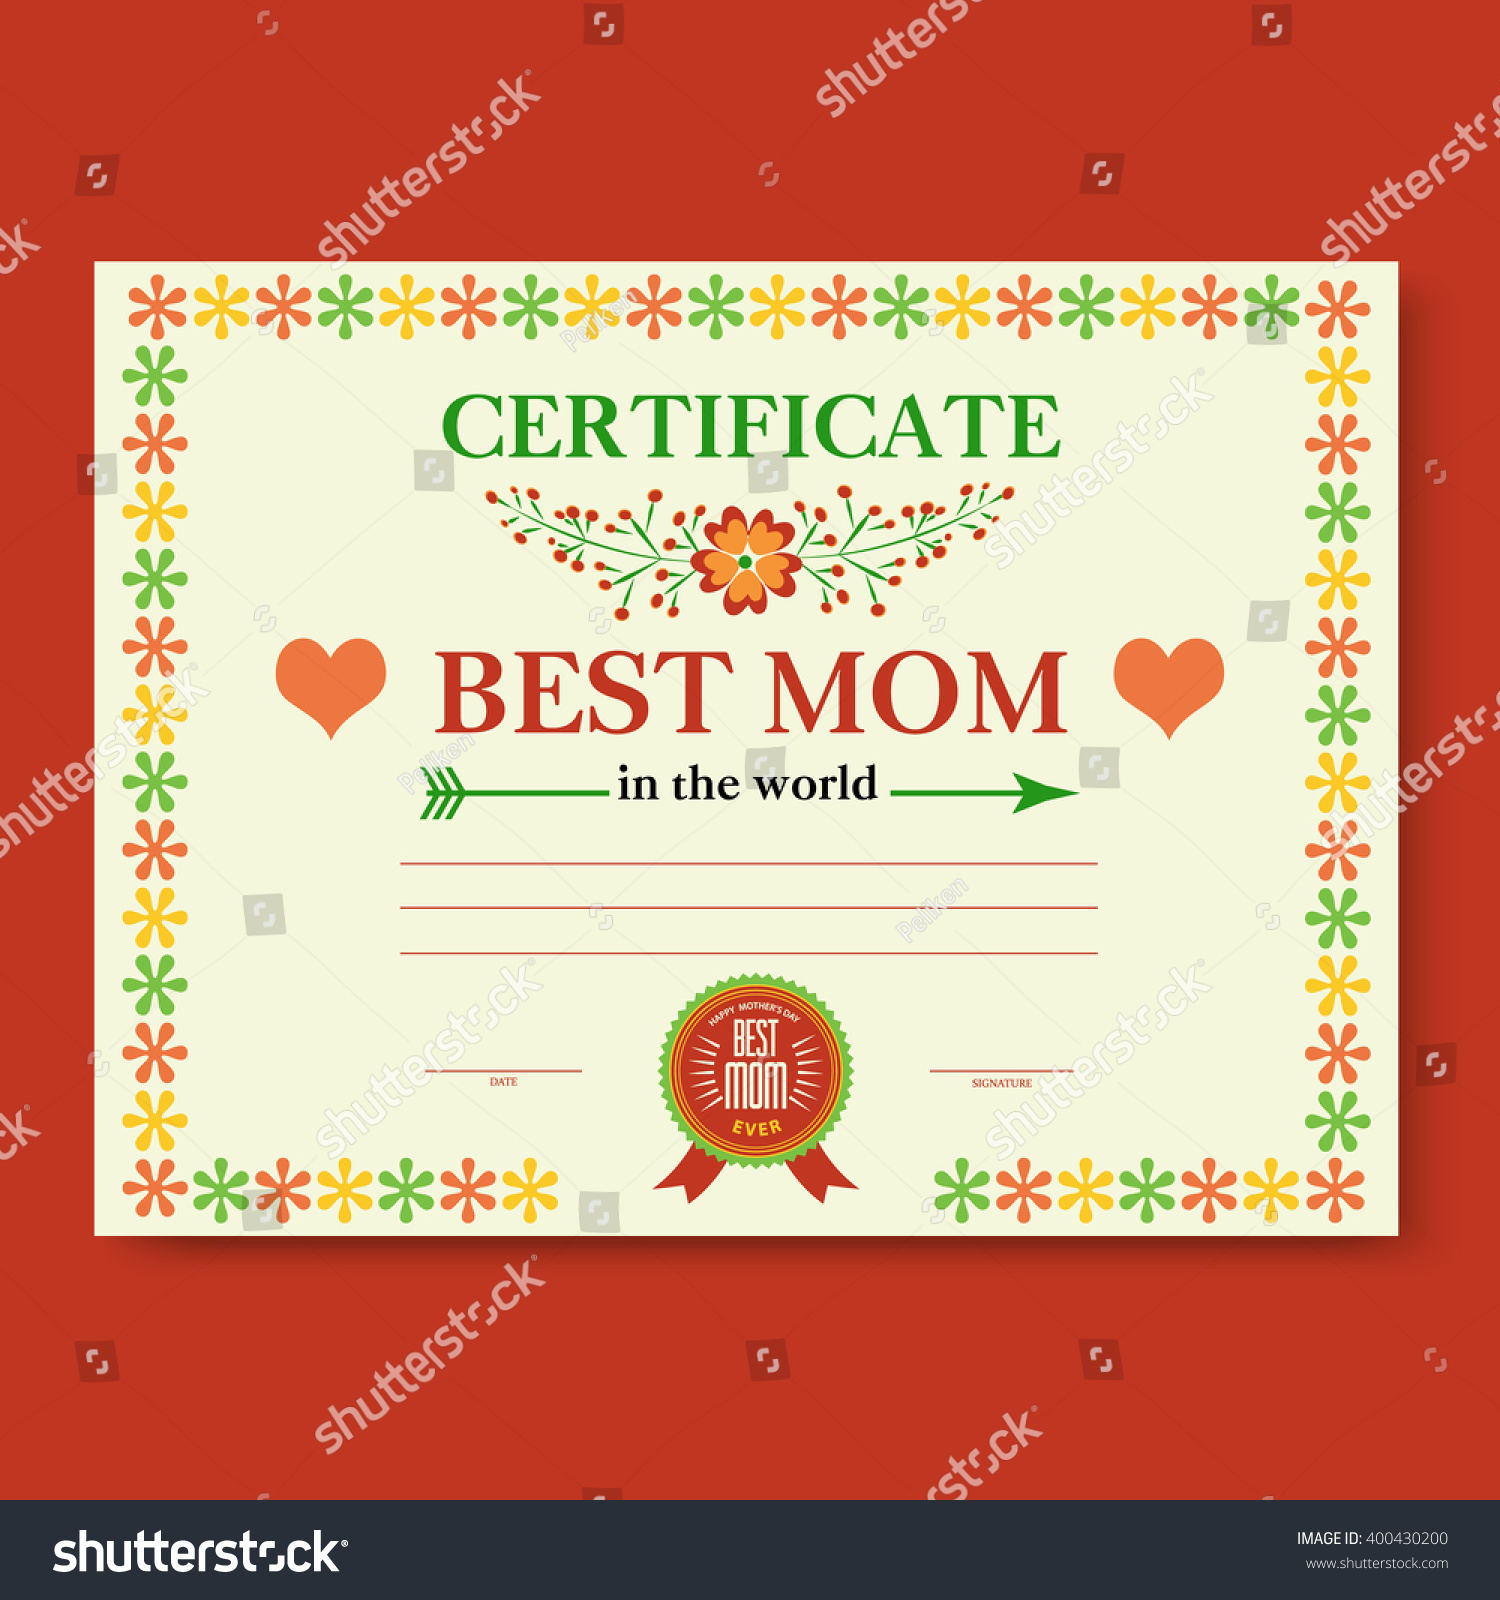 Template Certificate Diploma Congratulations Mothers Day